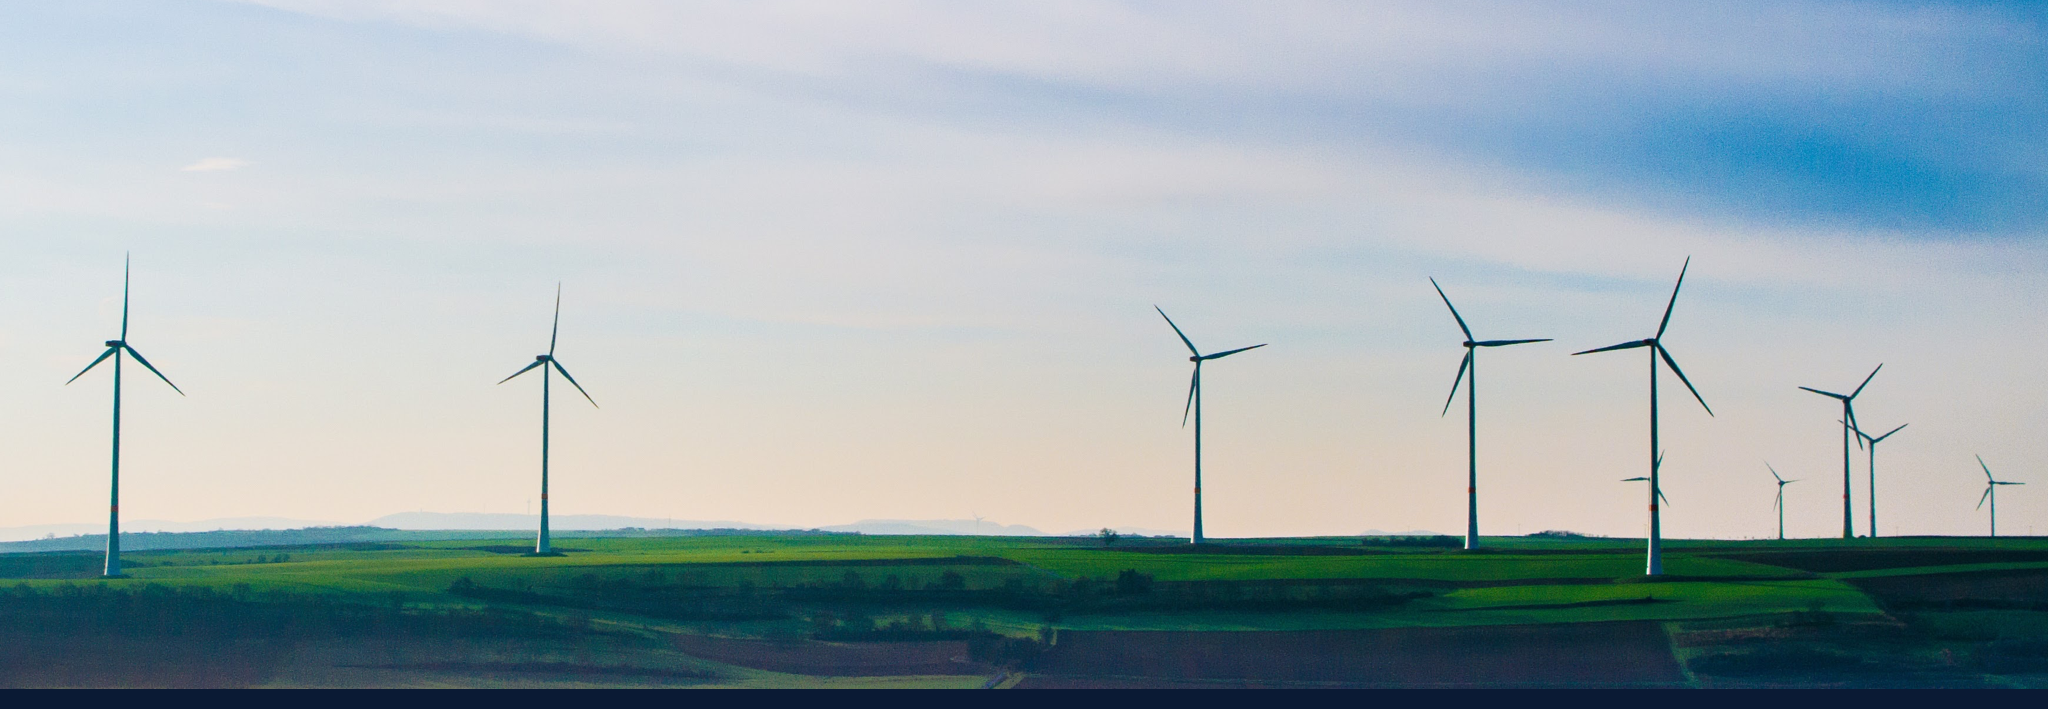 <html><head></head><body><p>Wind farm photo</p></body></html>